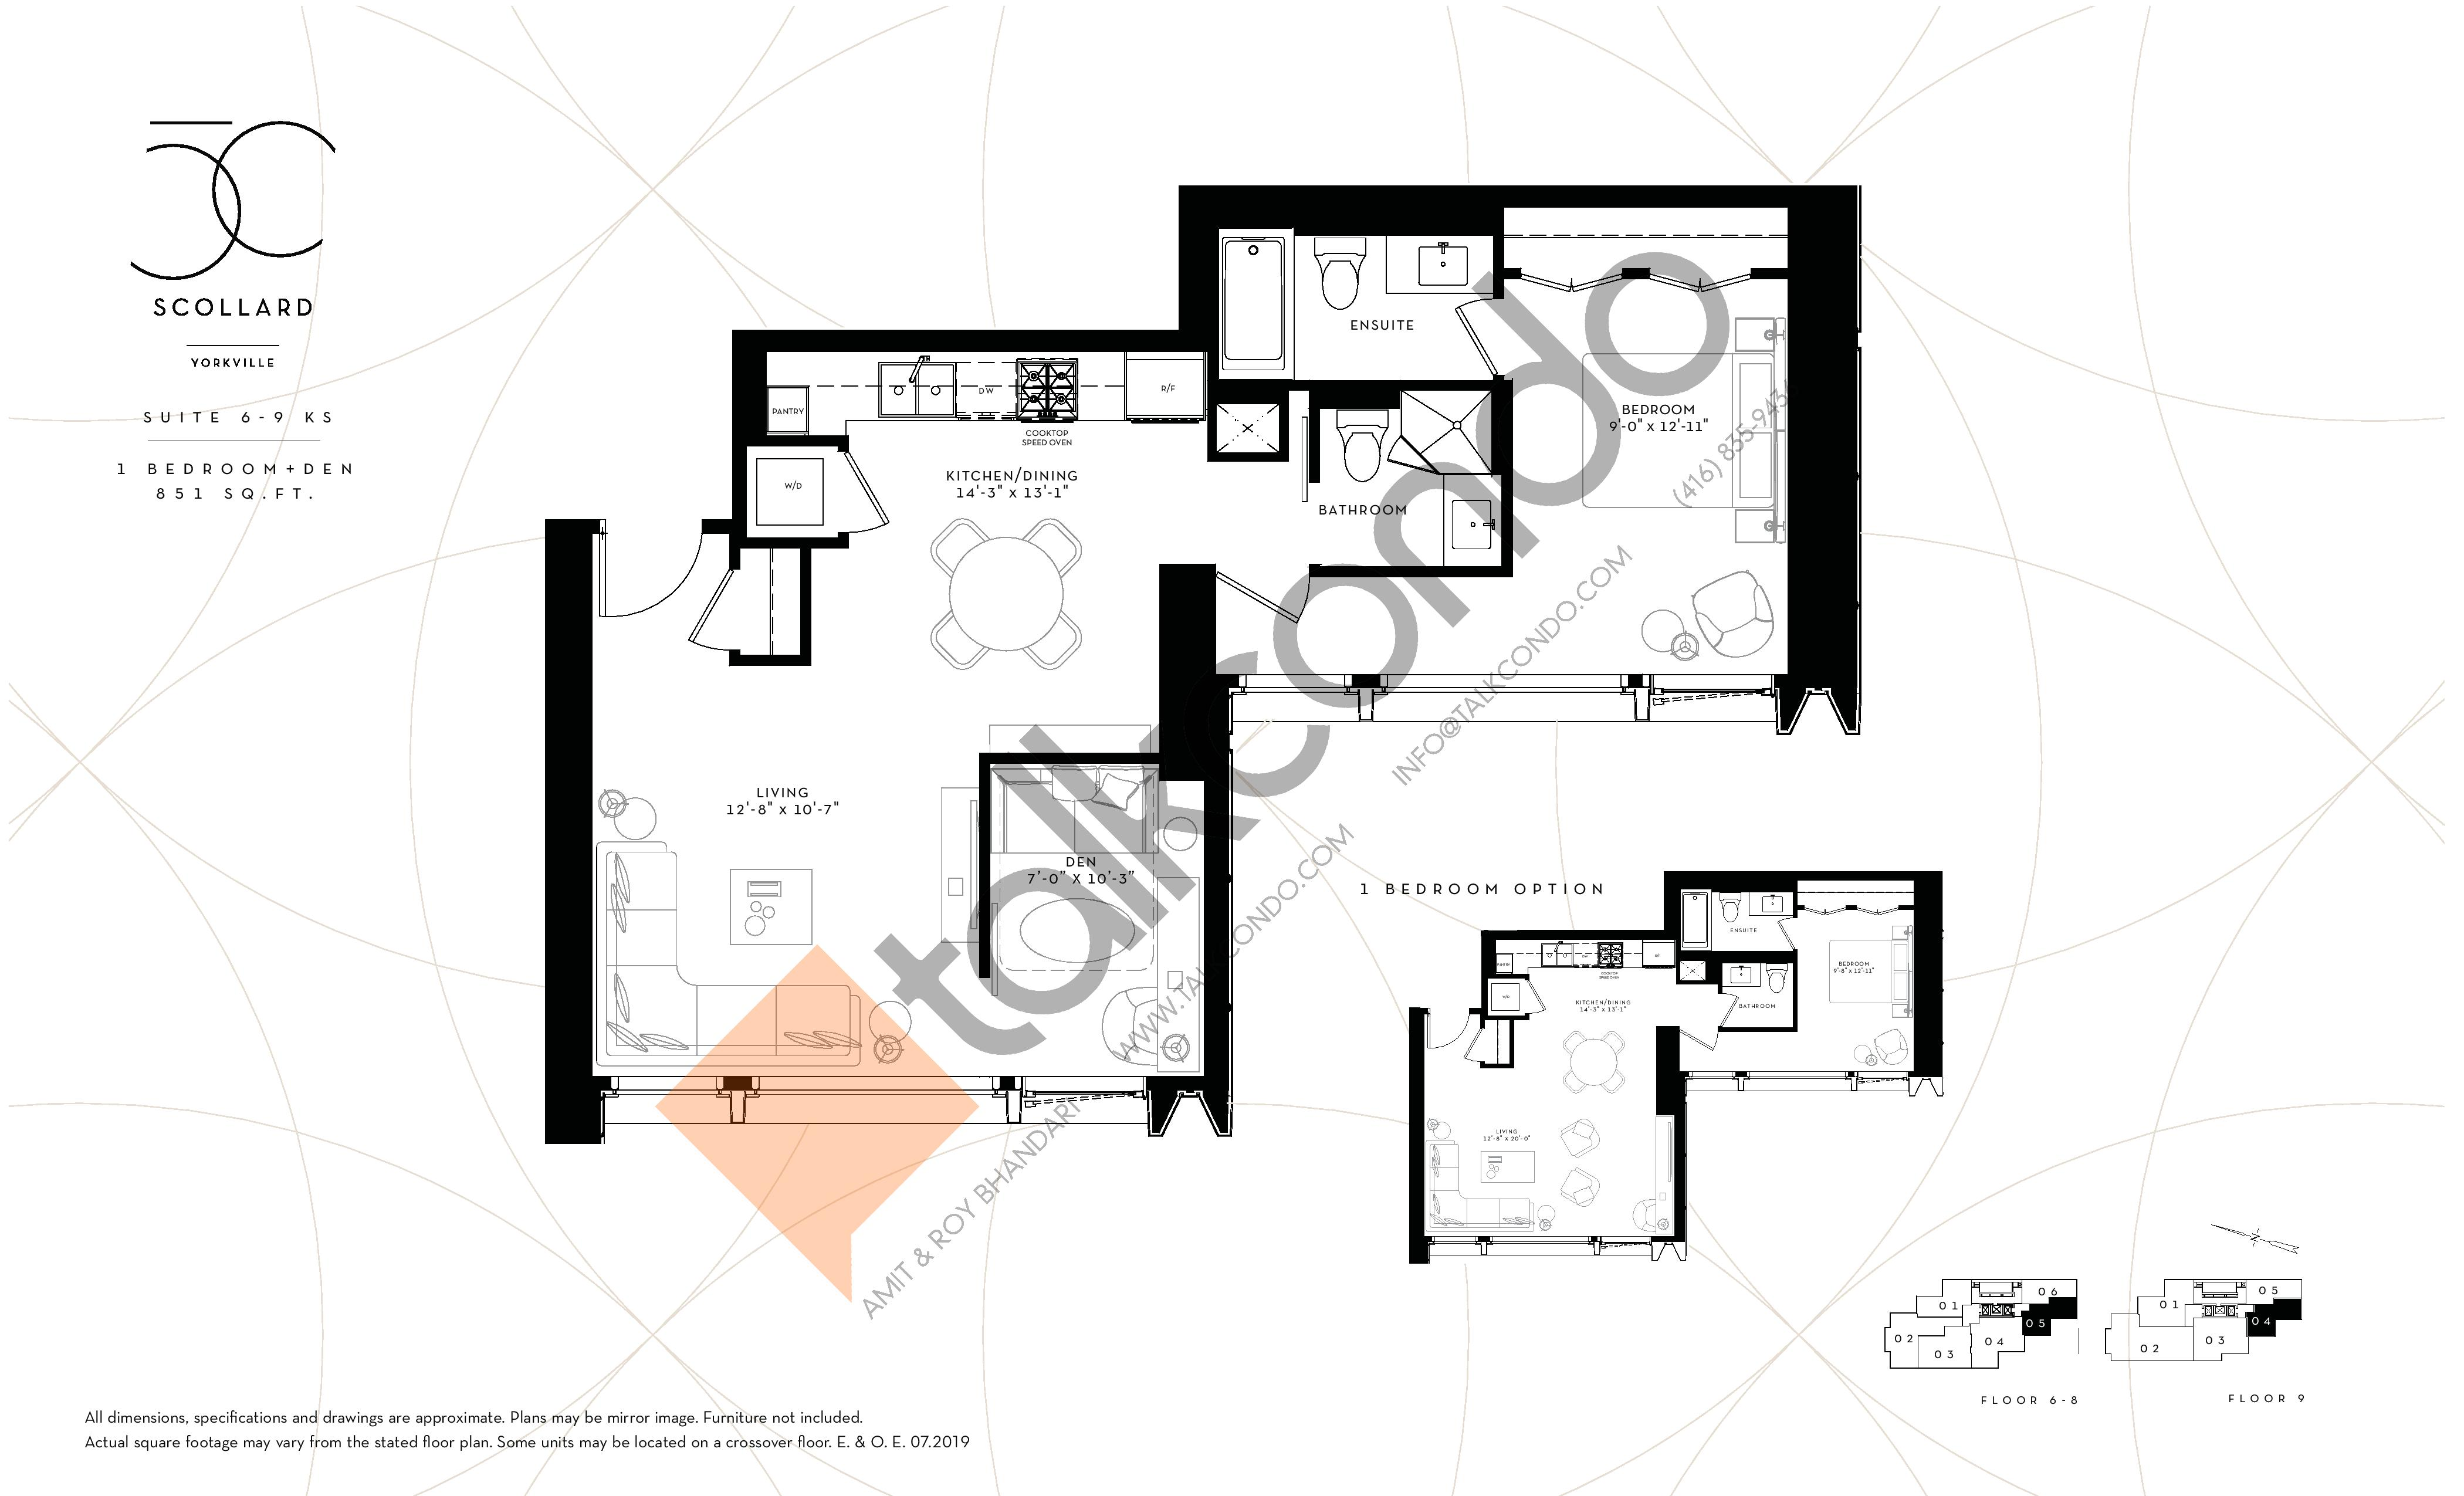 Suite 6-9 KS Floor Plan at Fifty Scollard Condos - 851 sq.ft